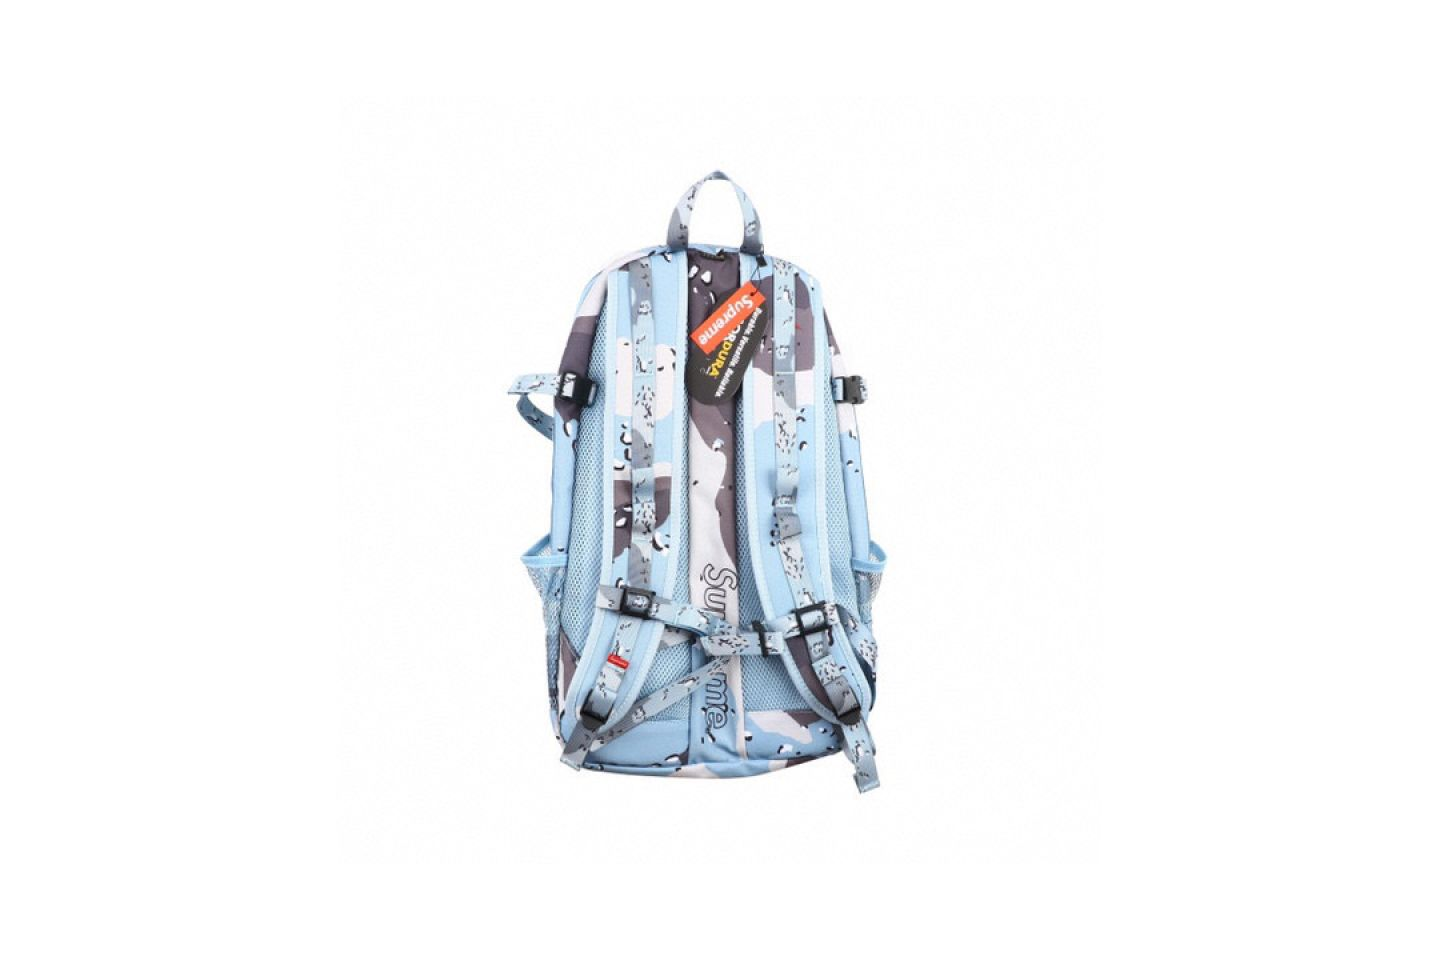 Goods Supreme Backpack (ss20) Blue Chocolate Chip Camo 4 supreme_backpack_ss20_blue_chocolate_chip_camo__4